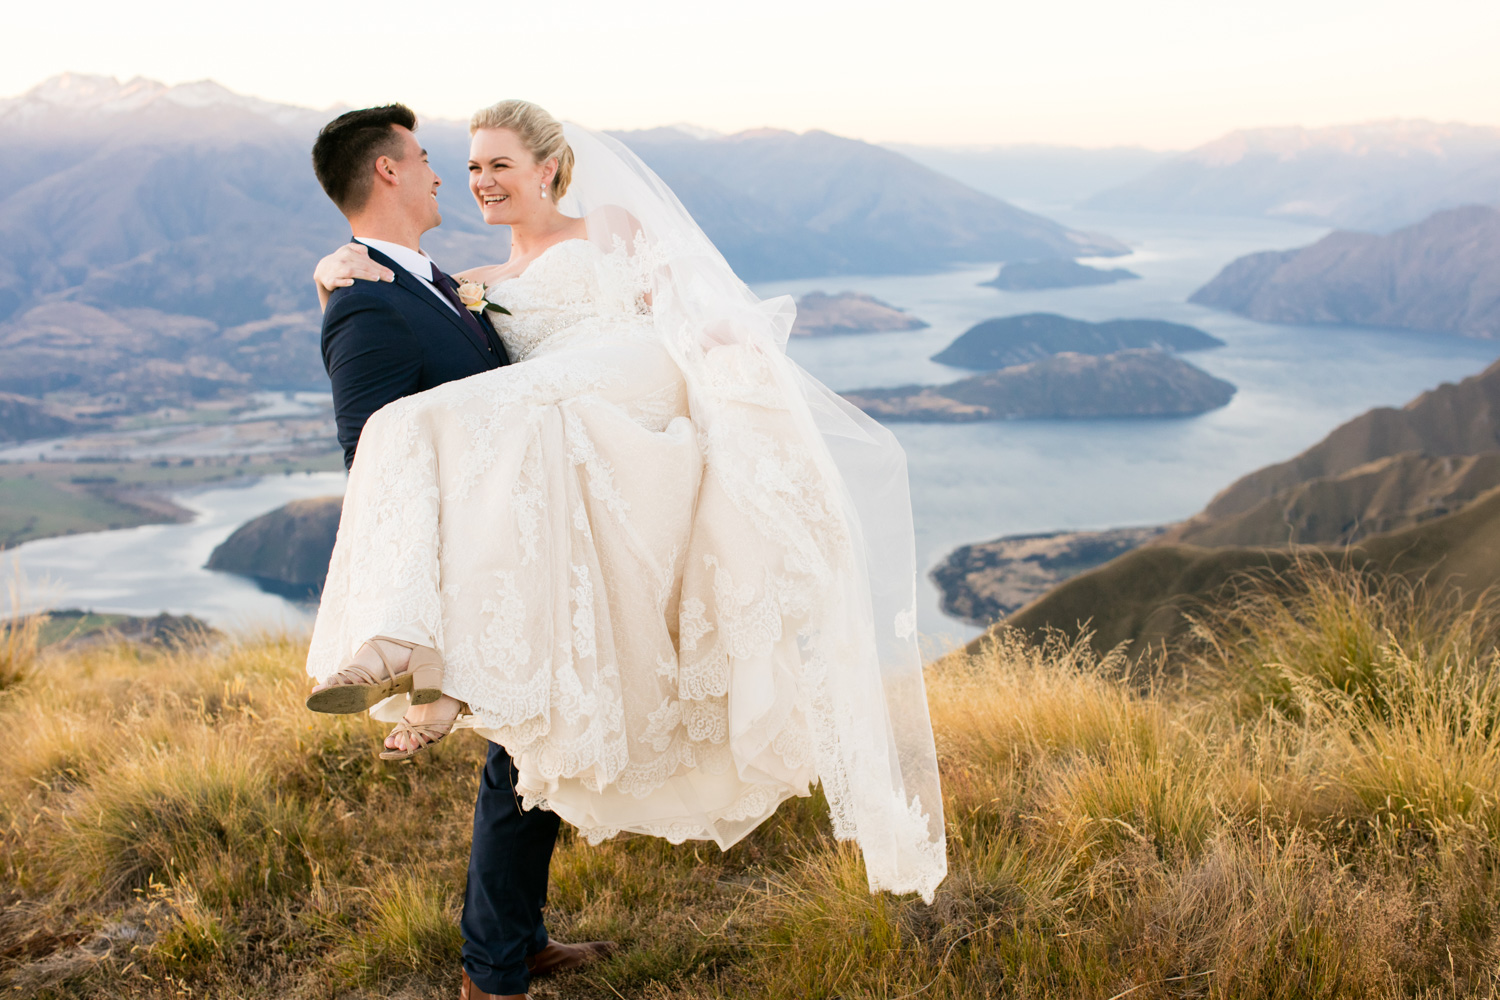 wedding-0340-mountains-helicopter-romantic-snow-brisbane.jpg